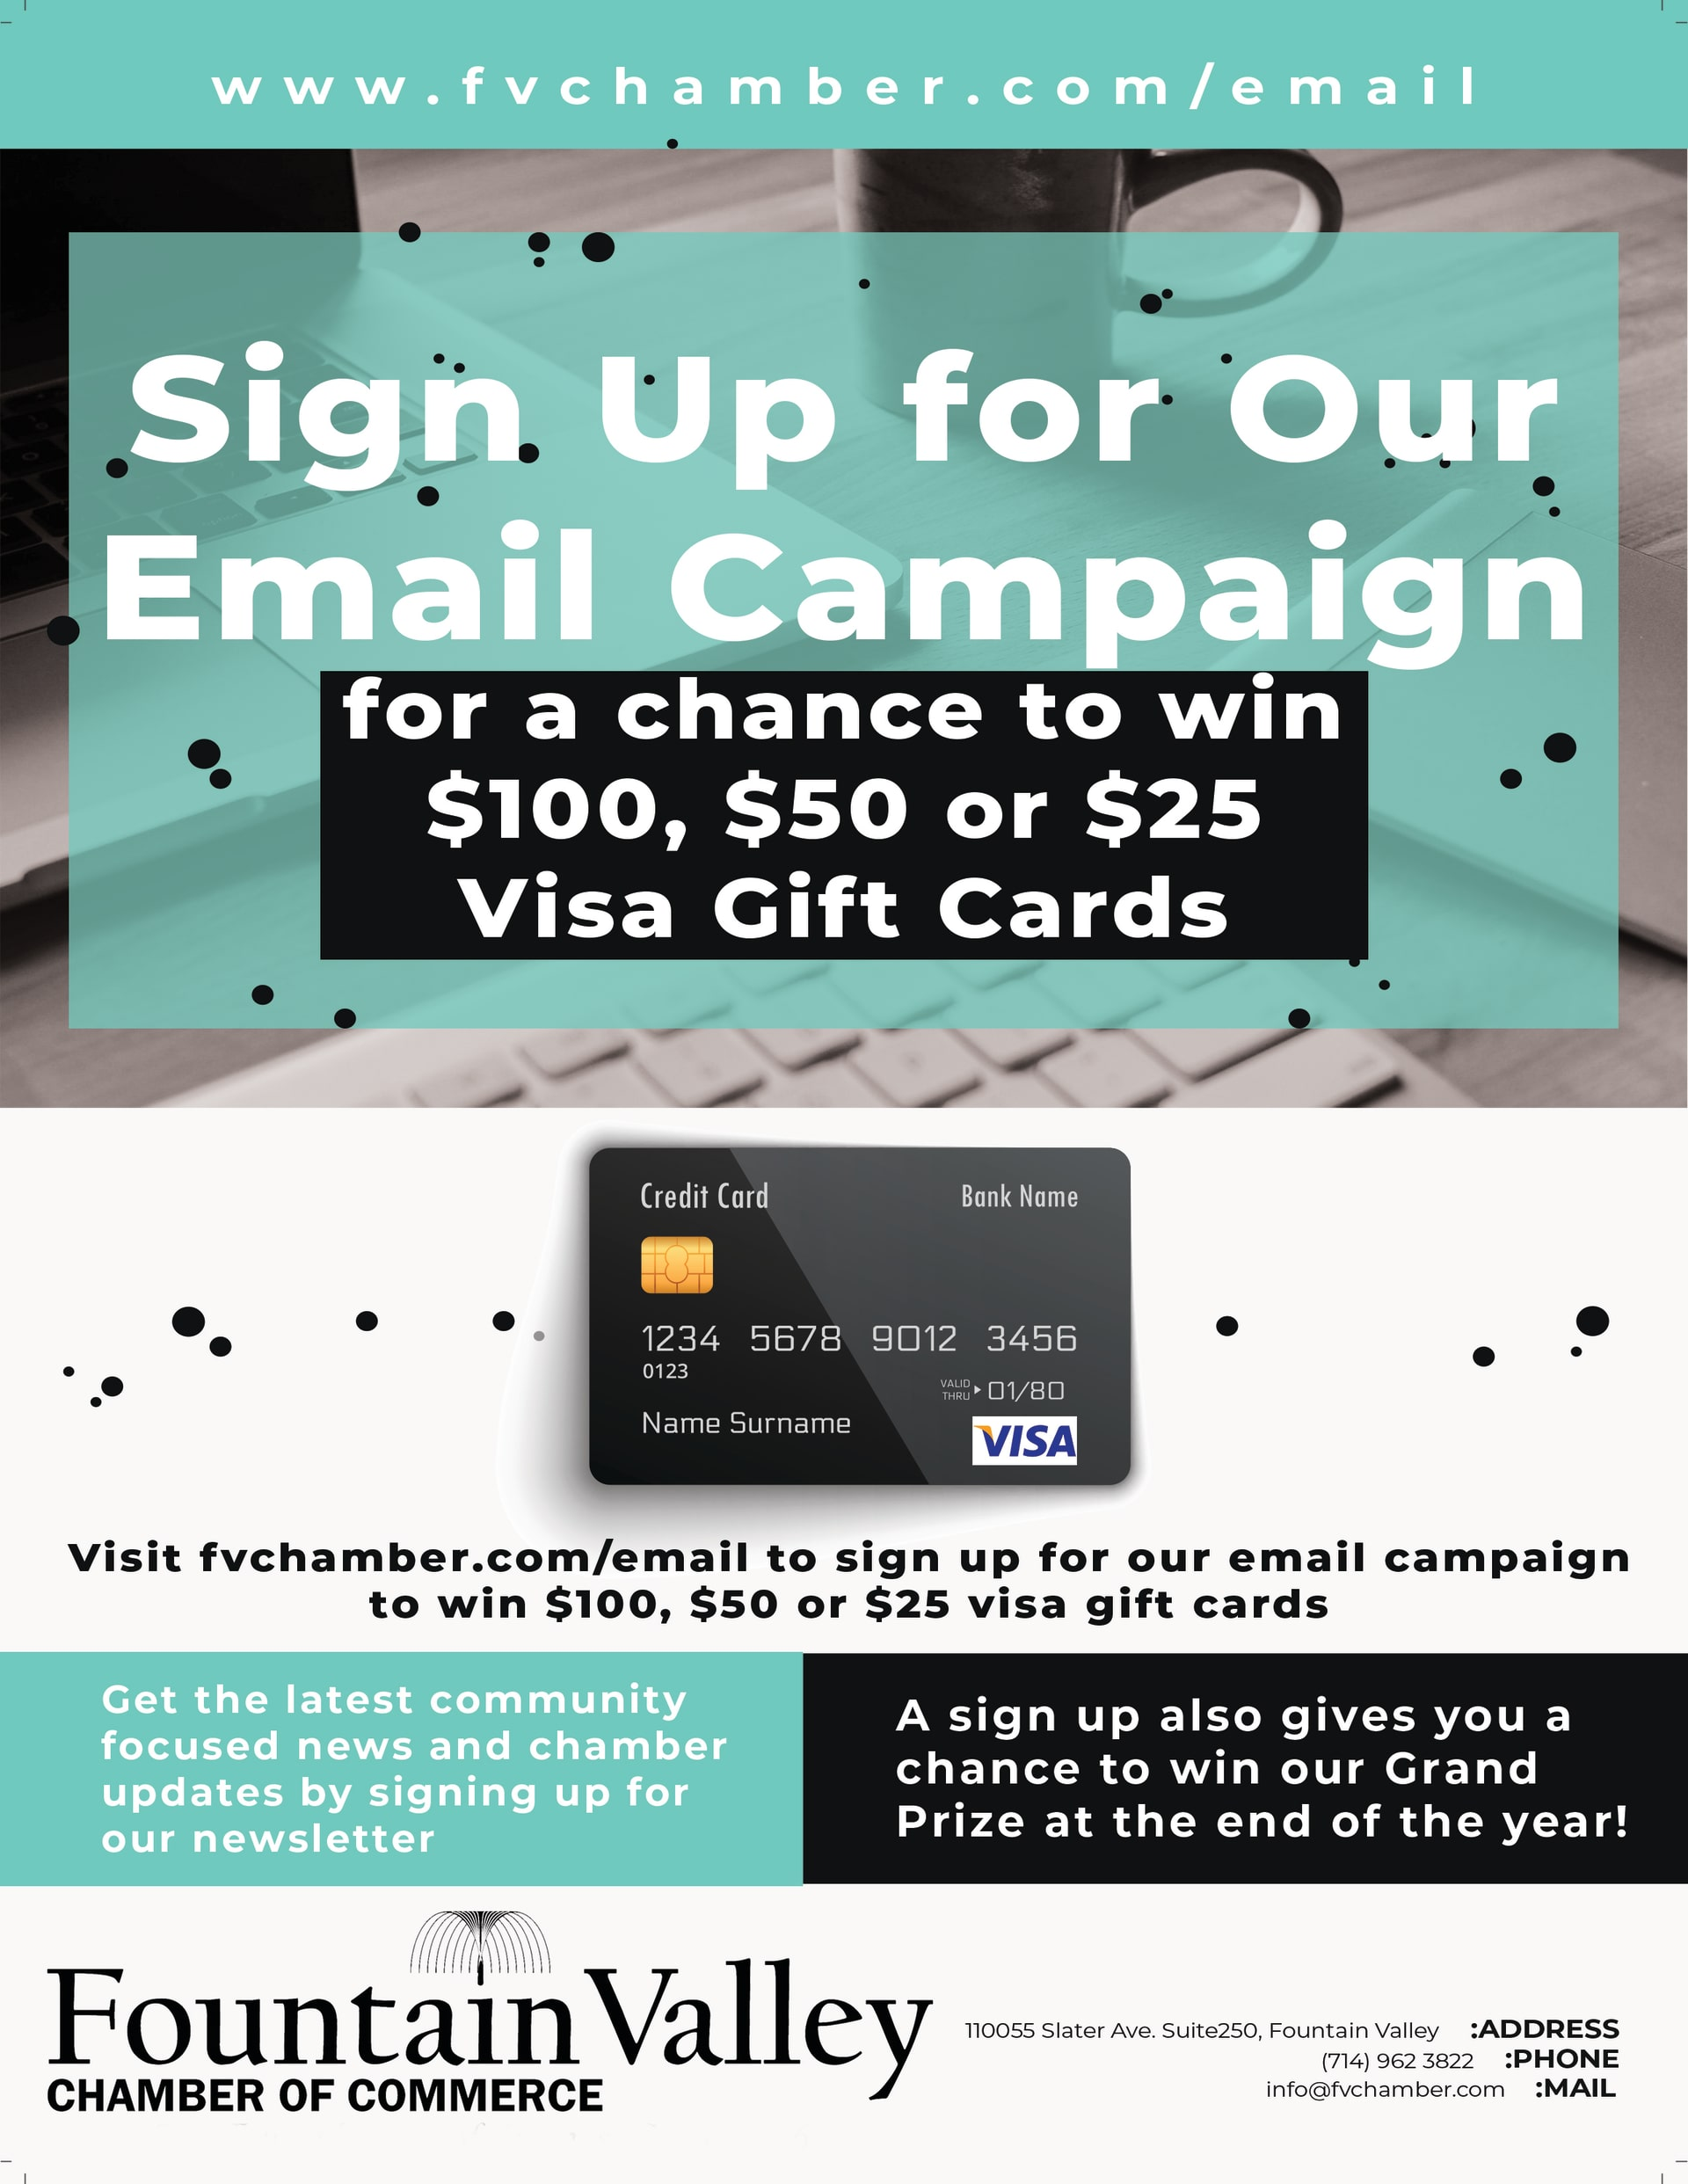 Email-Campaign-Flyer-w1920.jpg